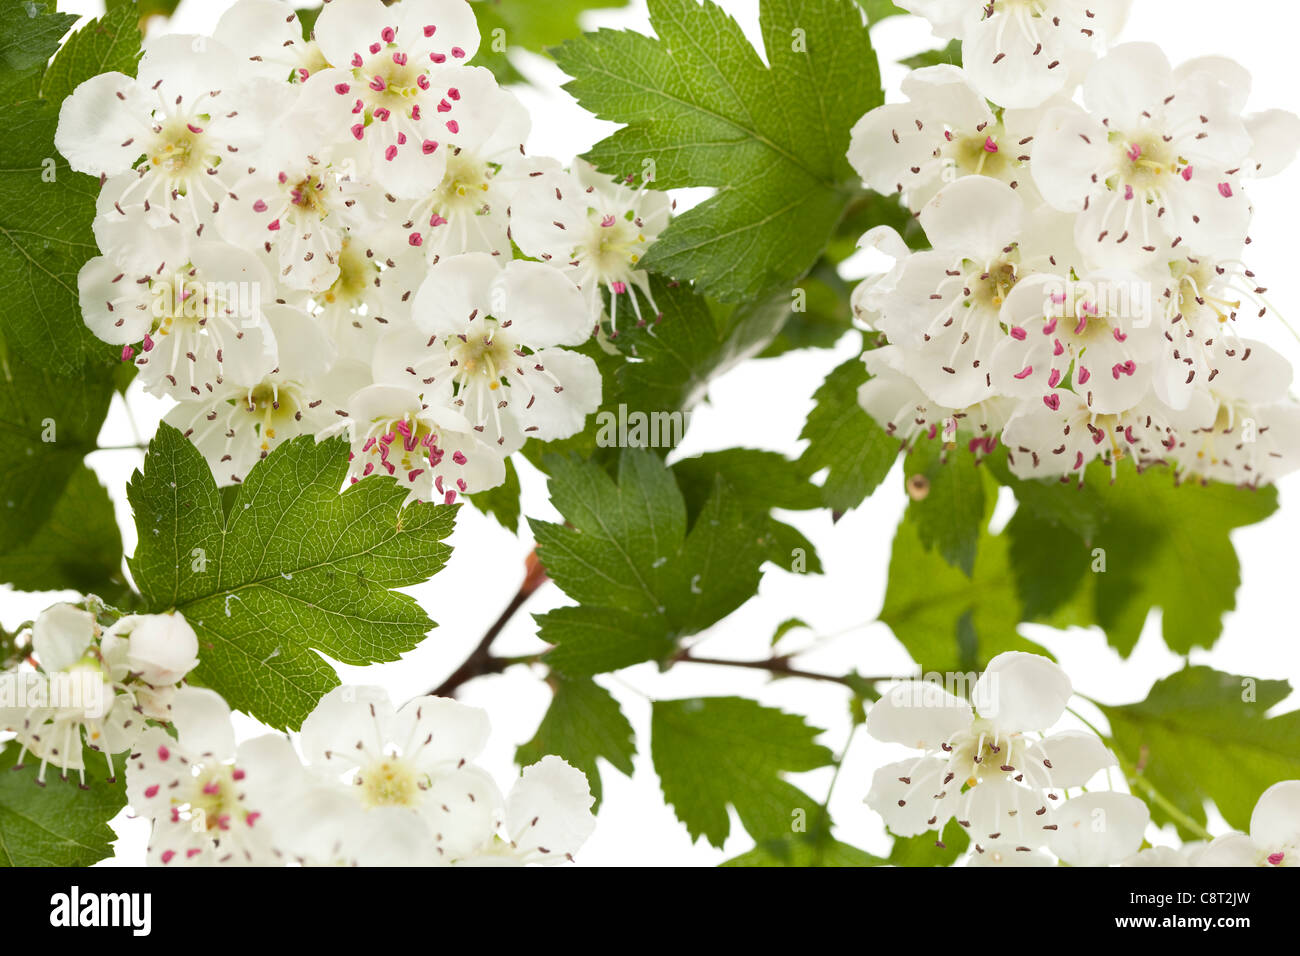 Hawthorn or thornapple in bloom with white flower heads - Stock Image